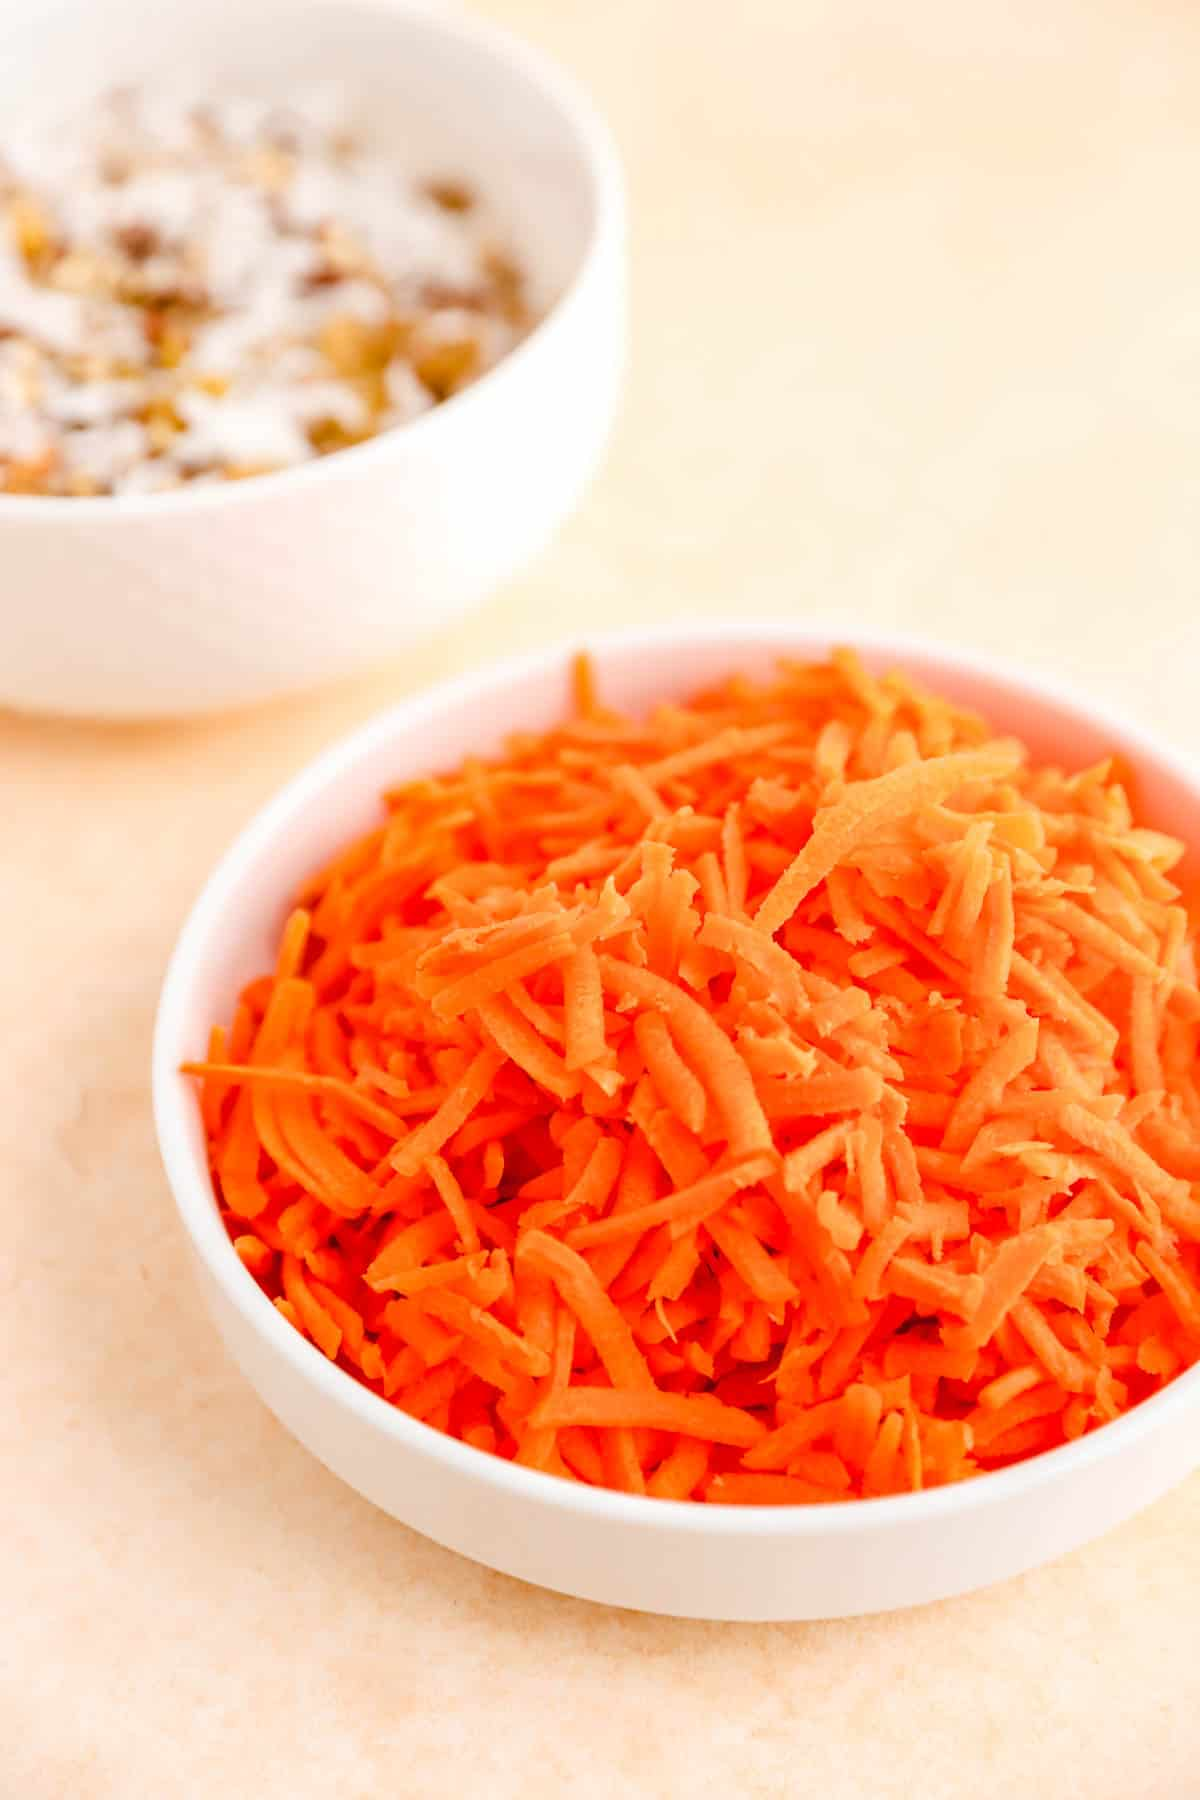 shredded carrot in a small white dish.